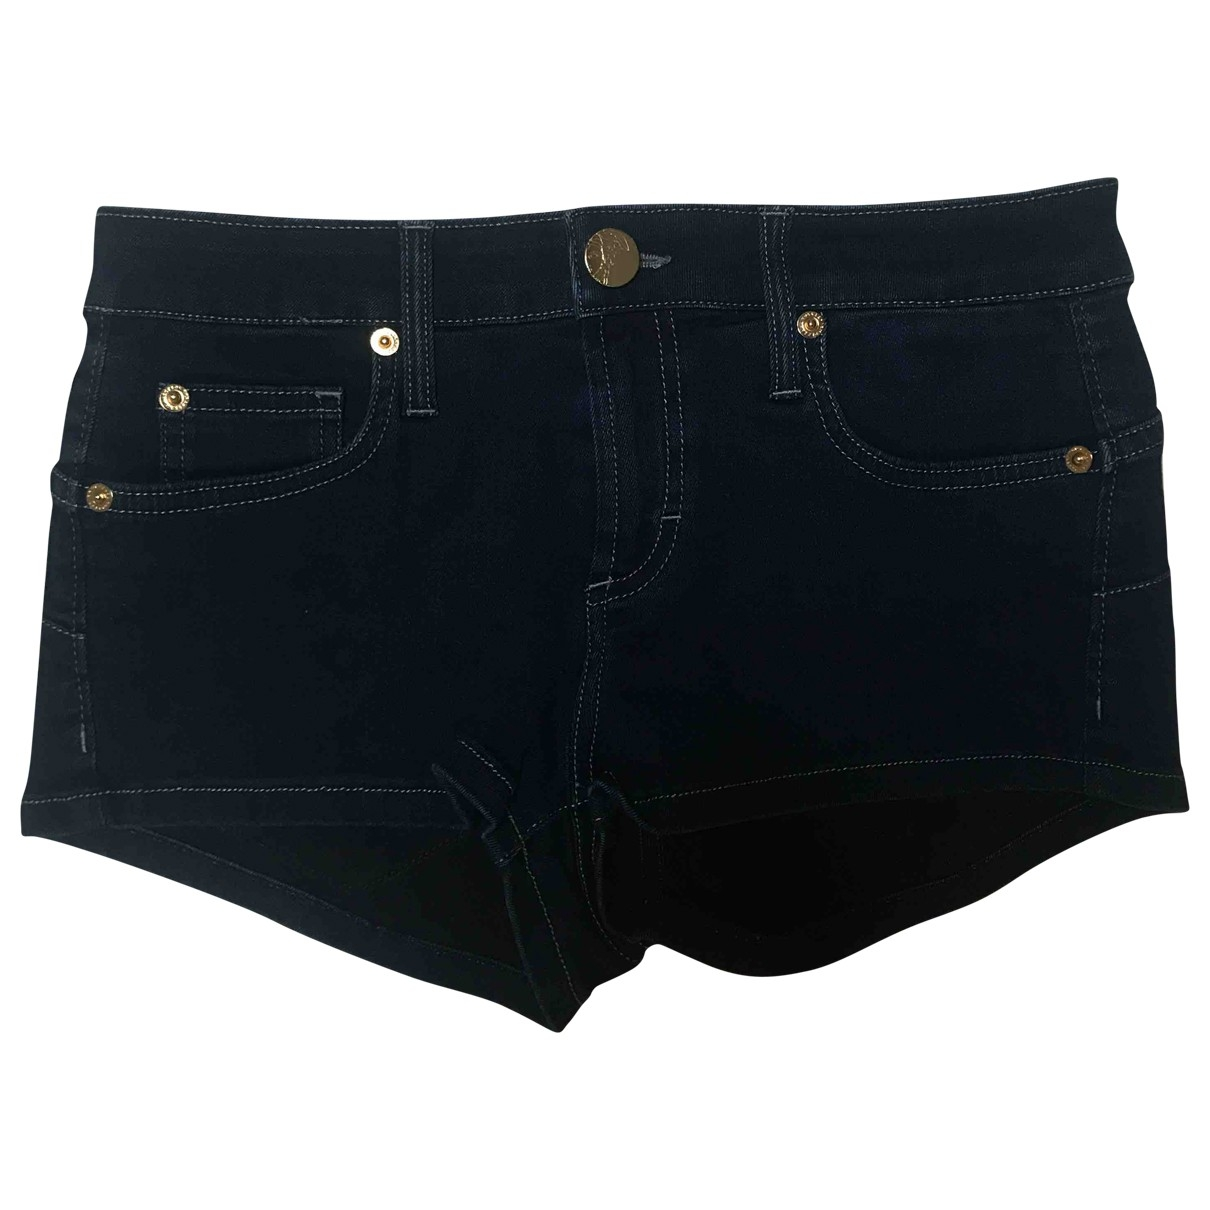 Versace \N Blue Cotton - elasthane Shorts for Women 36 FR